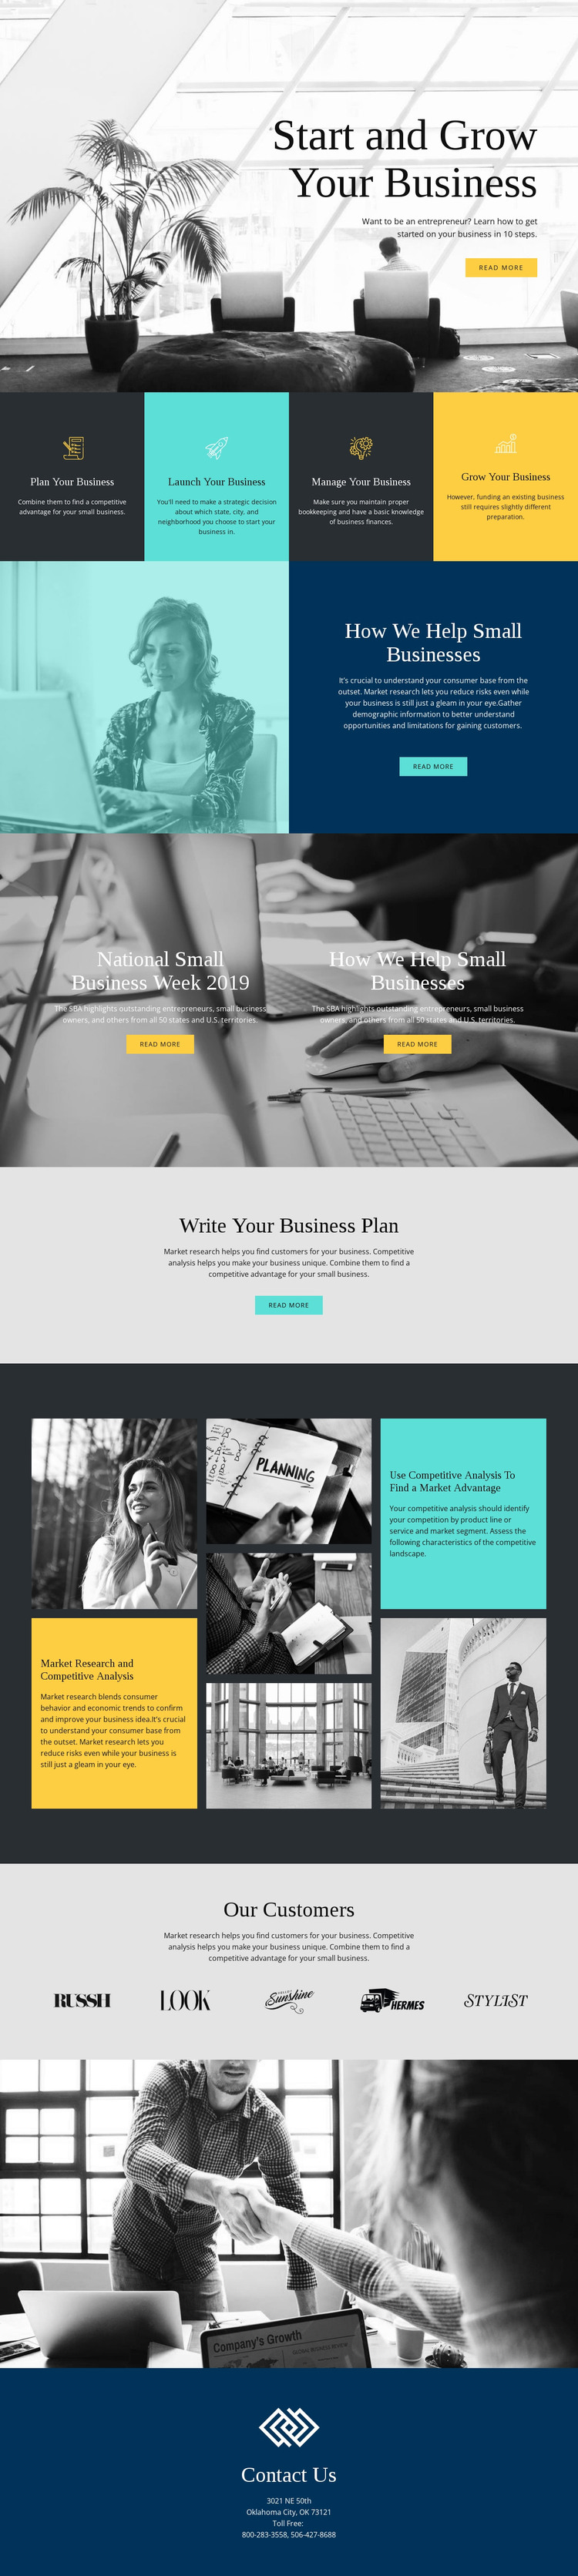 Start and grow your business Woocommerce Theme